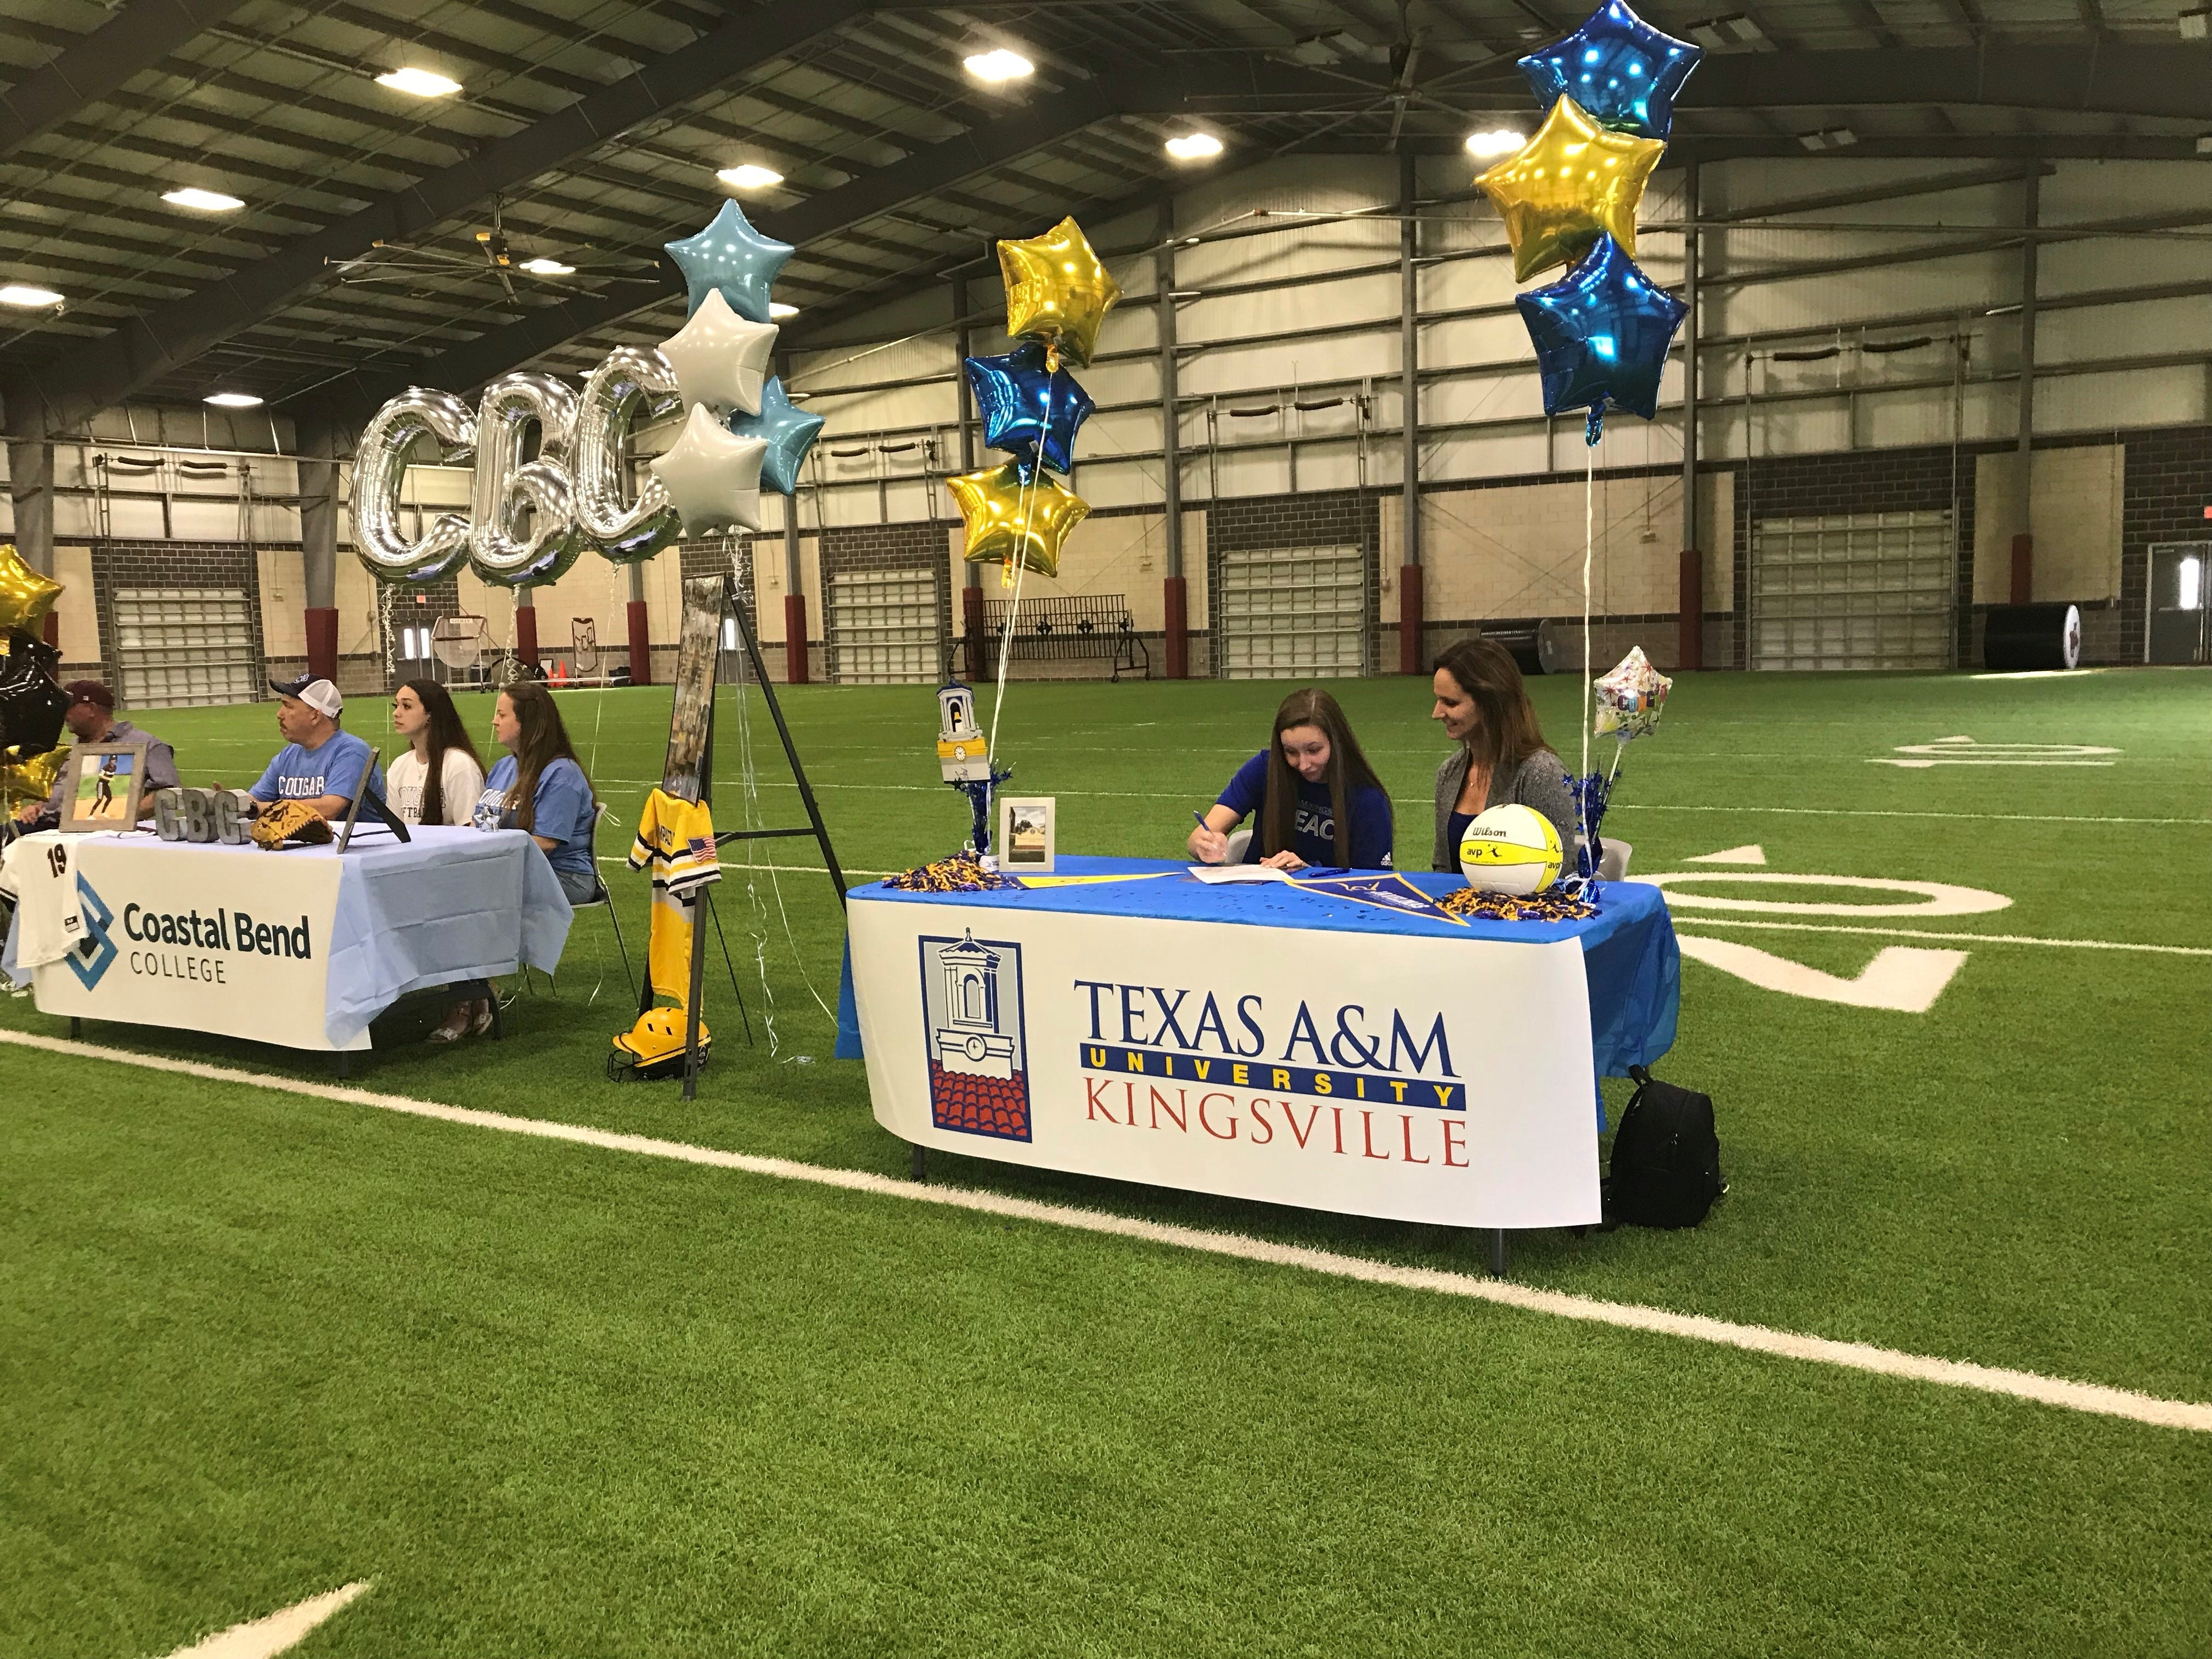 Adrienne Vanbrunt signed with Texas A&M University-Kingsville on Wednesday, Feb. 6 at Flour Bluff's athletic facility.